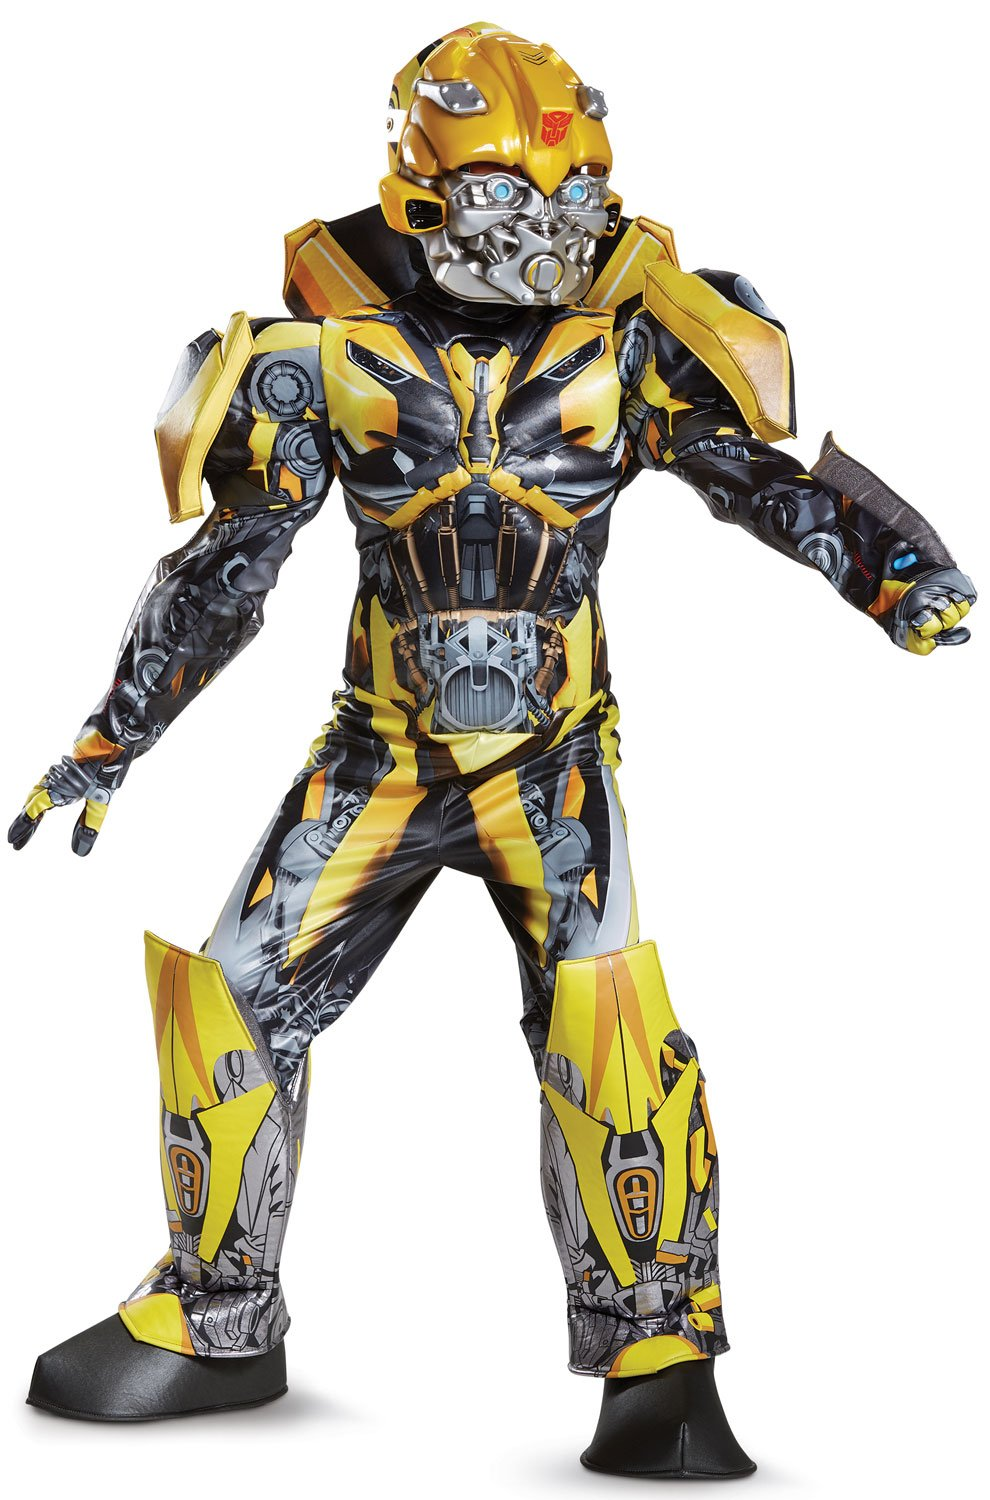 Disguise Bumblebee Movie Prestige Costume, Yellow, Small (4-6) by Disguise (Image #1)